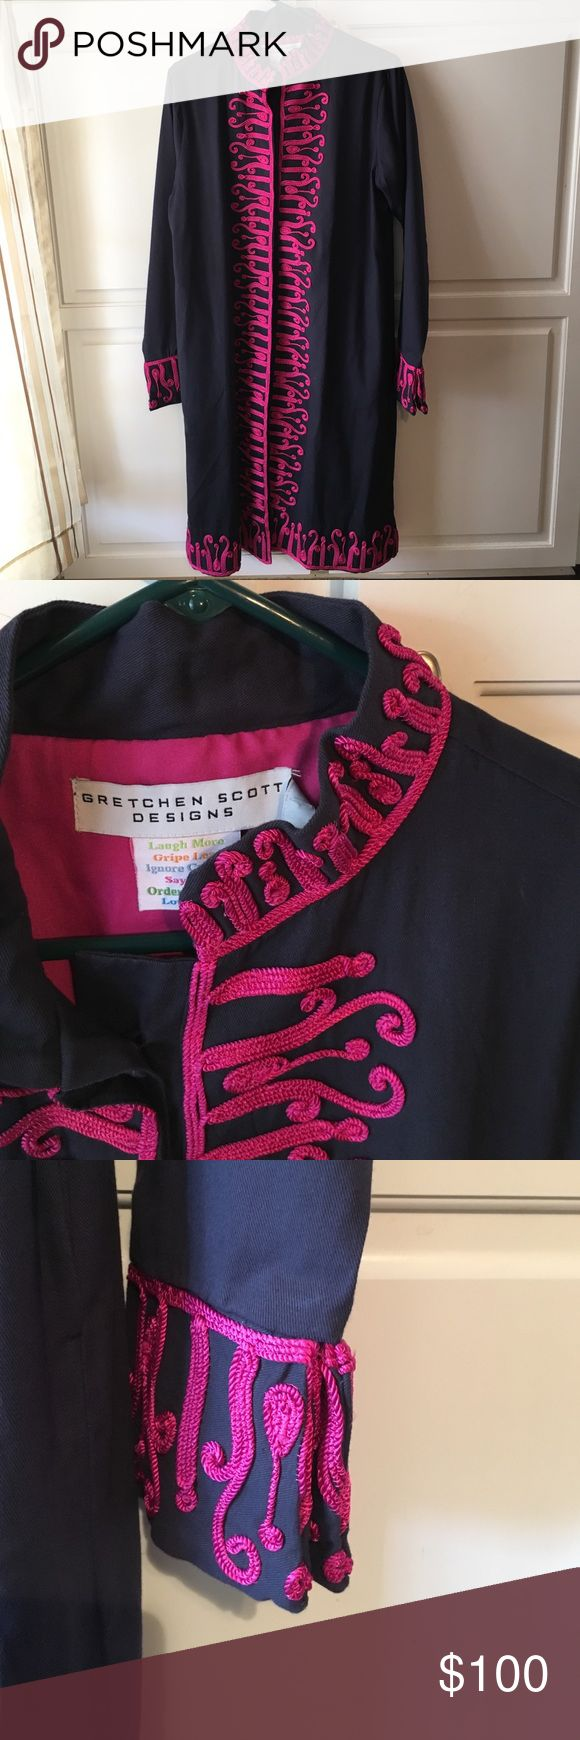 Flash Sale! Gretchen Scott Dark Navy Coat New with tags. Beautiful dark navy coat with pink cording. Mandarin collar for a unique twist. 100% cotton outer with soft polyester lining. Intricate Patterned Cording Along Edges. Hidden Quilted Contrast Embroidered Buttons. Double Faced Embroidered Turn Back Cuffs. Side Seam Pockets Gretchen Scott Jackets & Coats